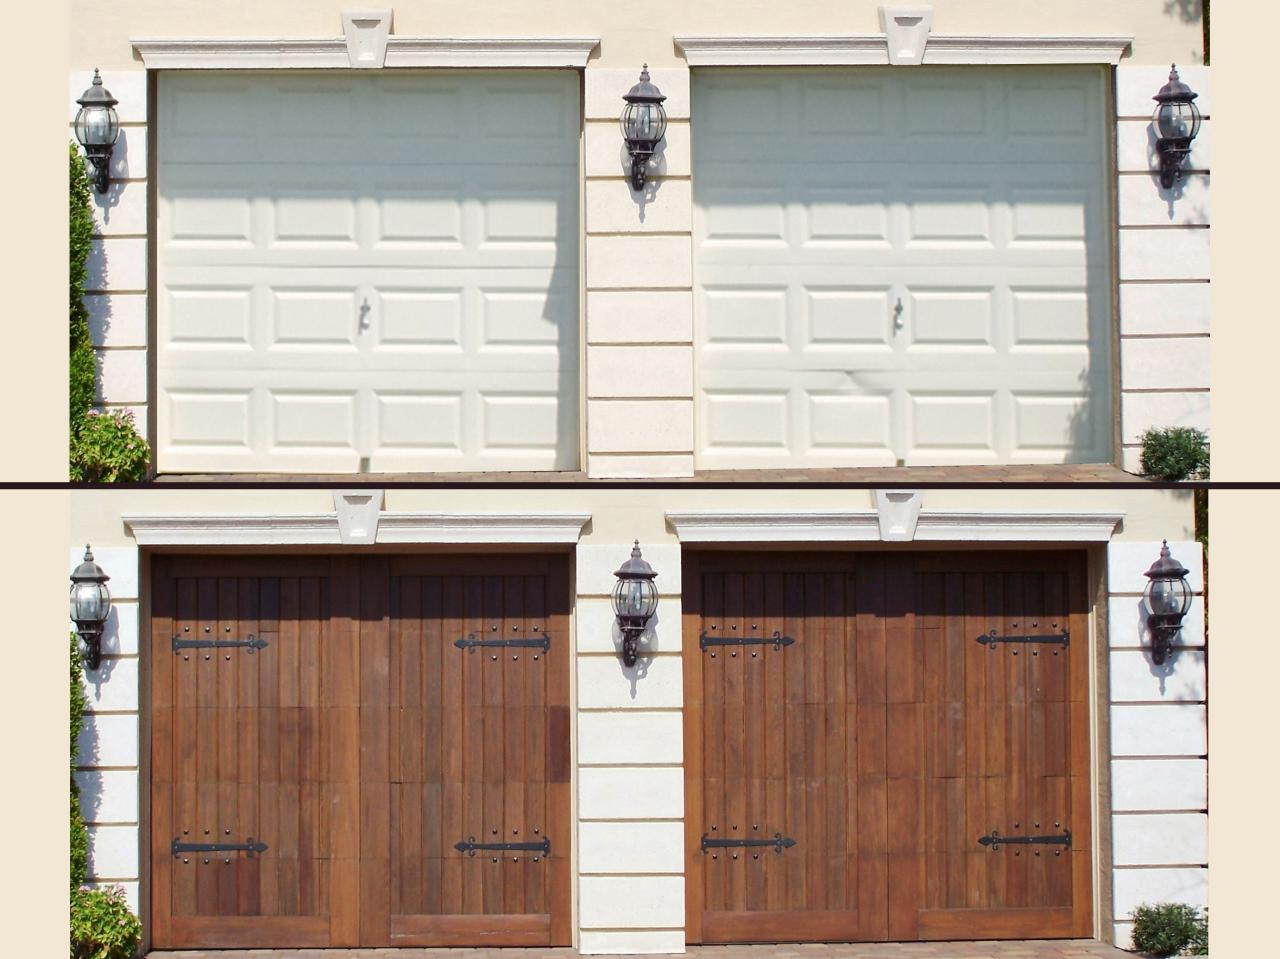 Garage door buying guide diy solutioingenieria Gallery